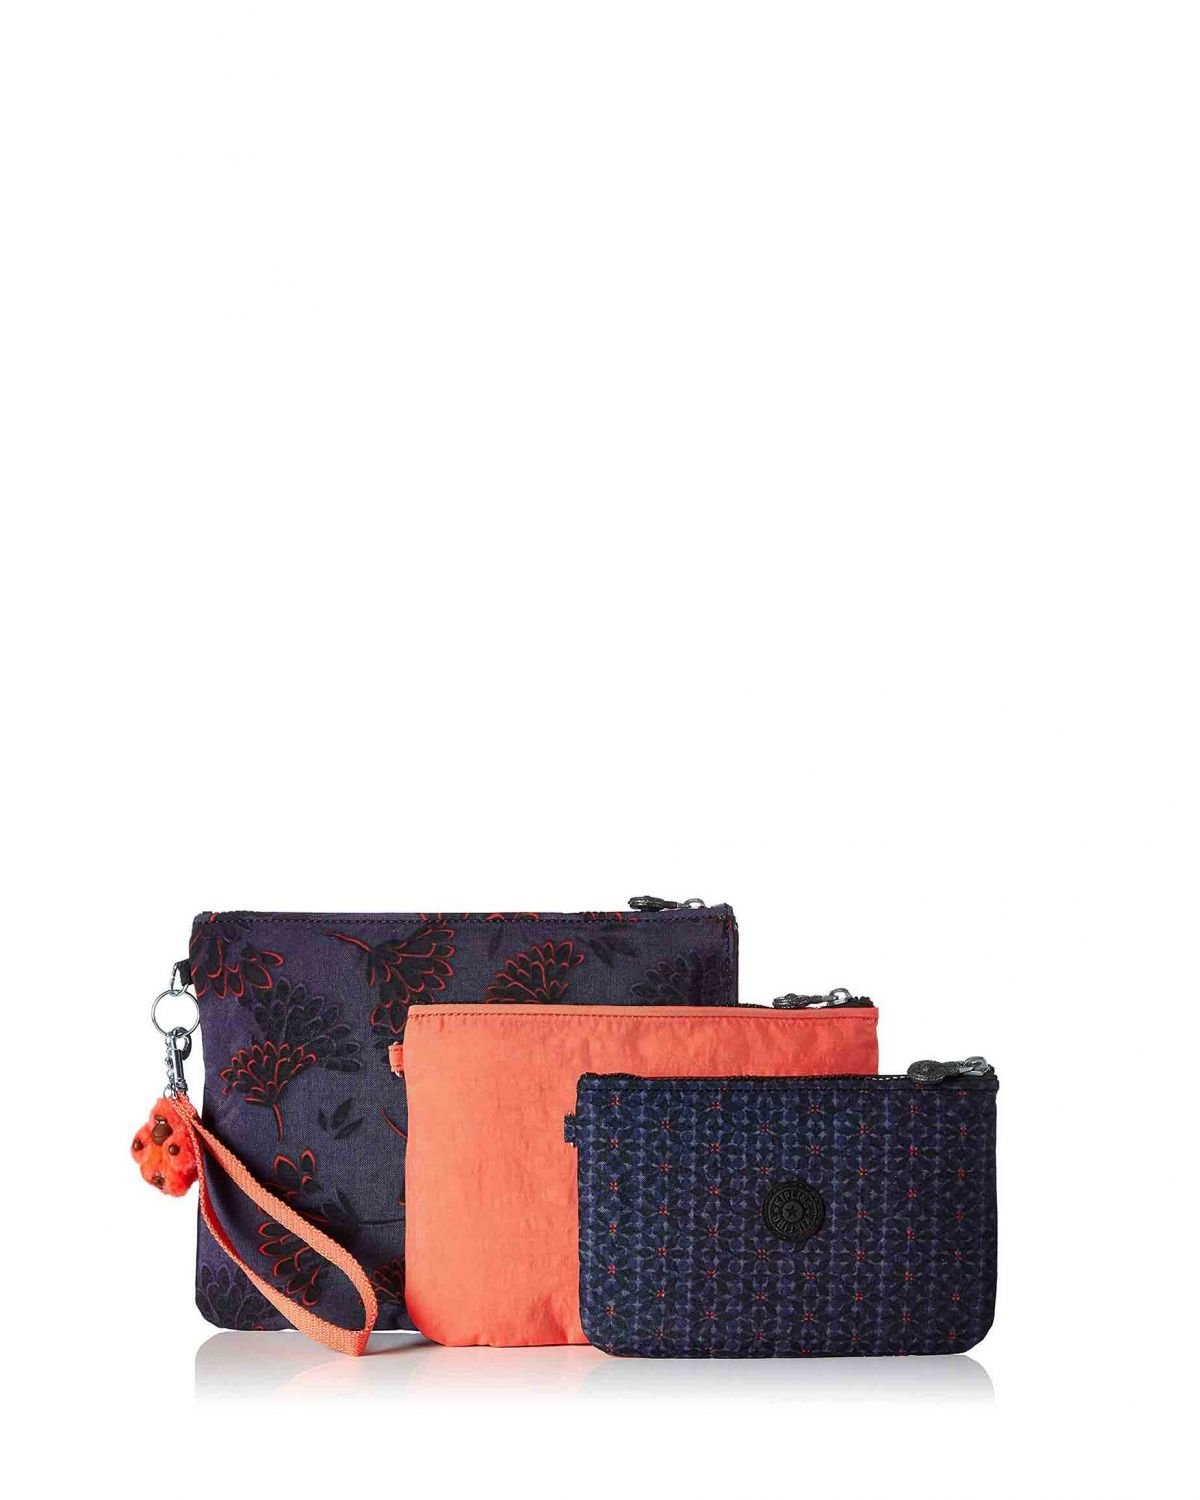 Kipling Iaka Beauty Of Gifting K10978 Floral Night